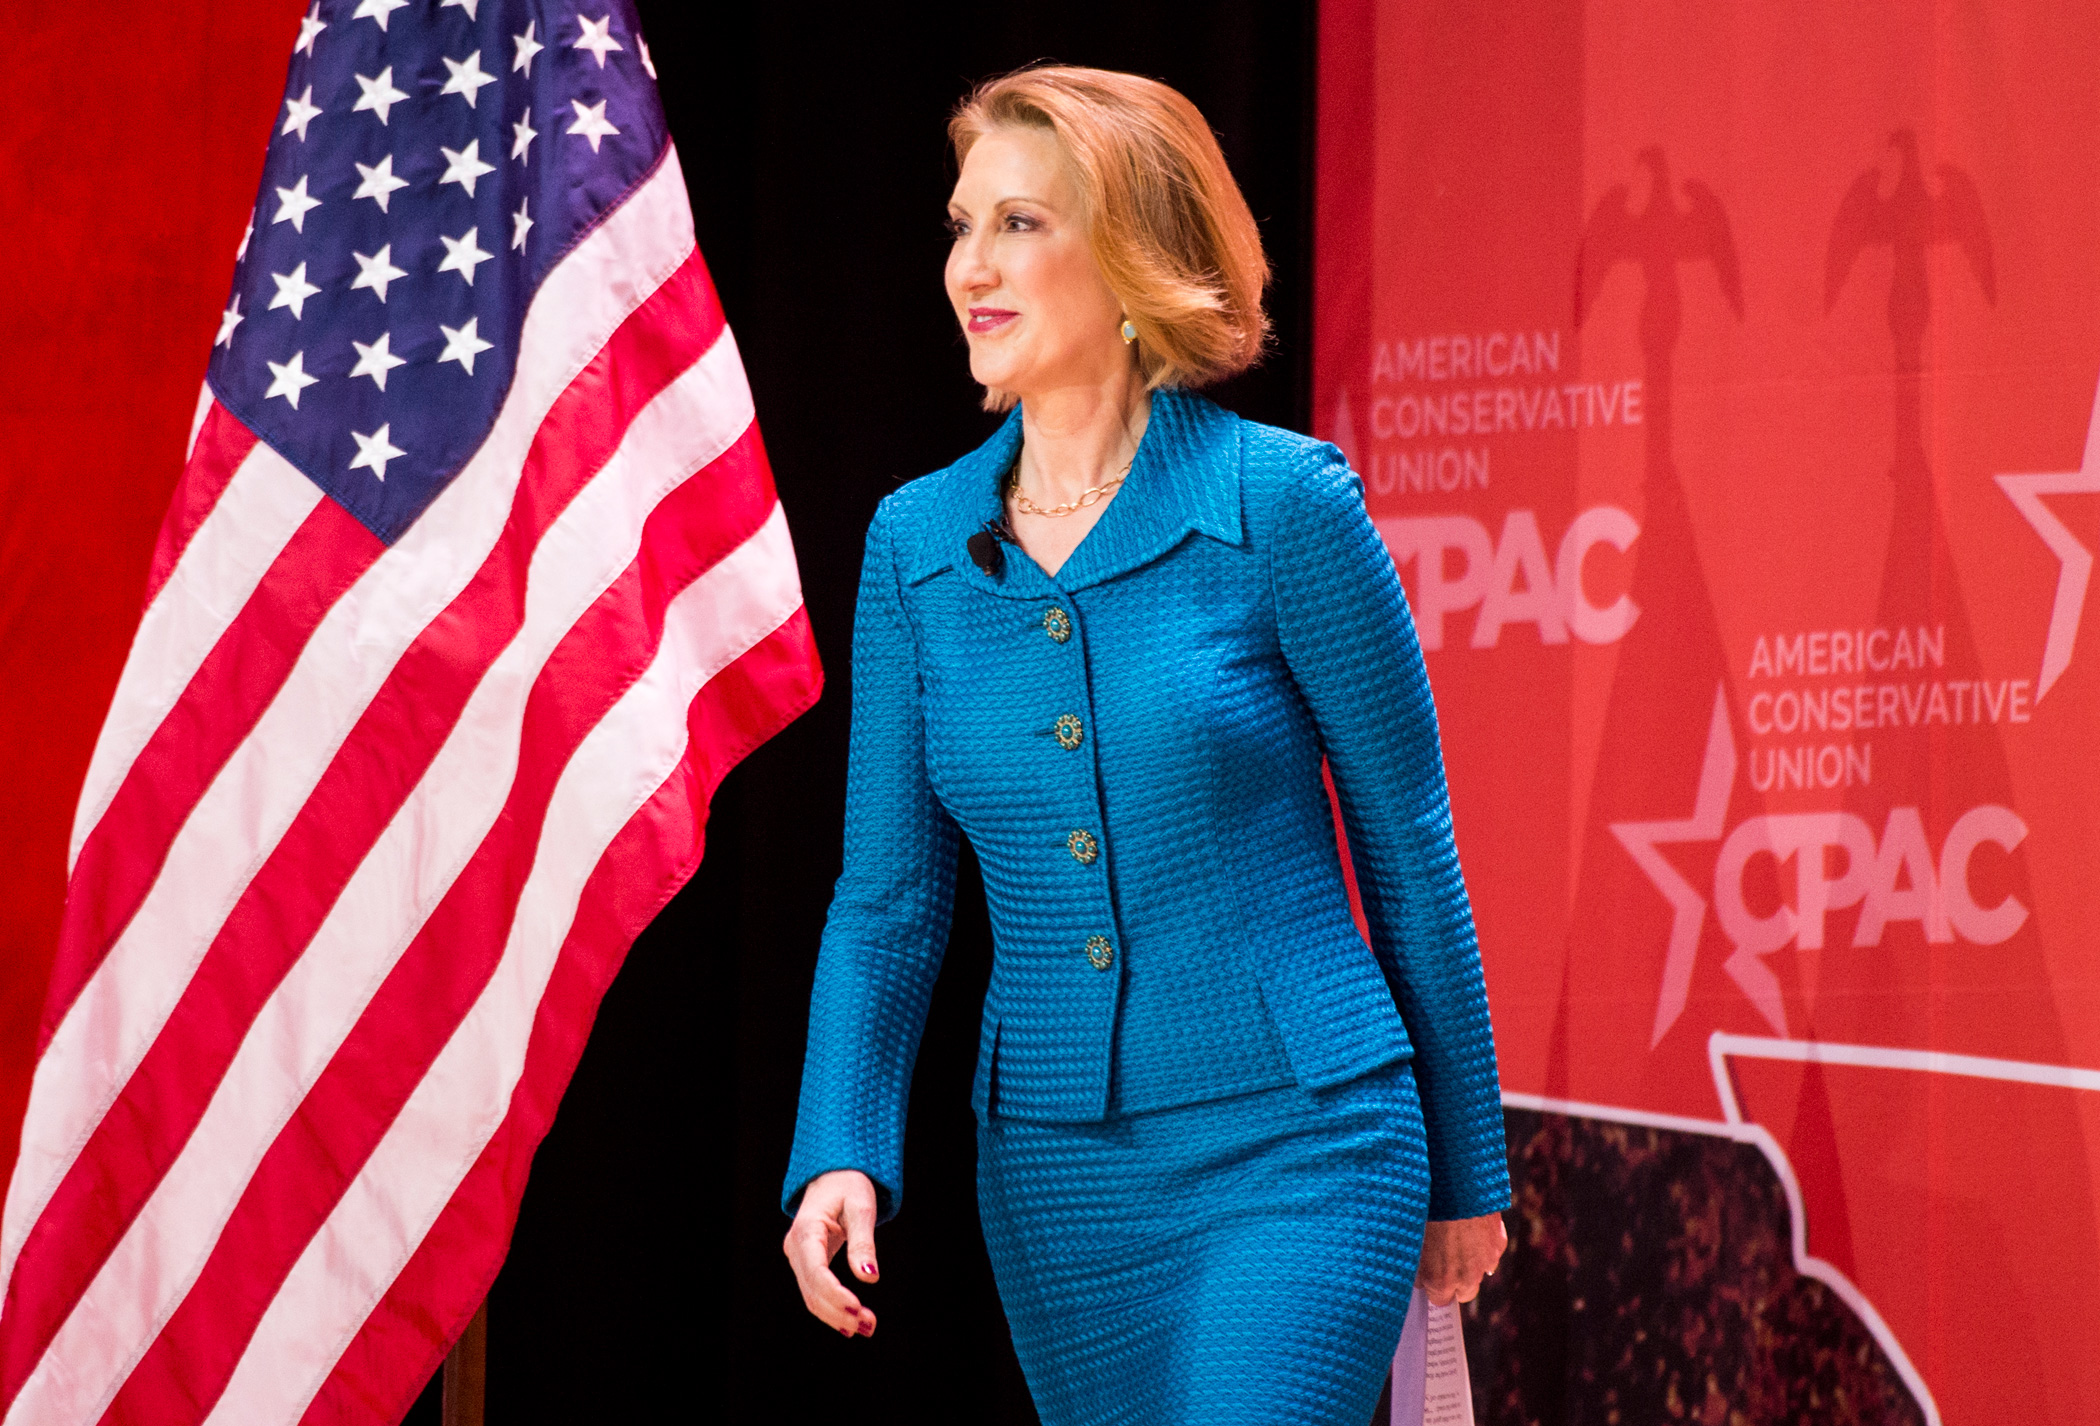 Carly Fiorina at CPAC on Feb. 26, 2015 in National Harbor, Md.